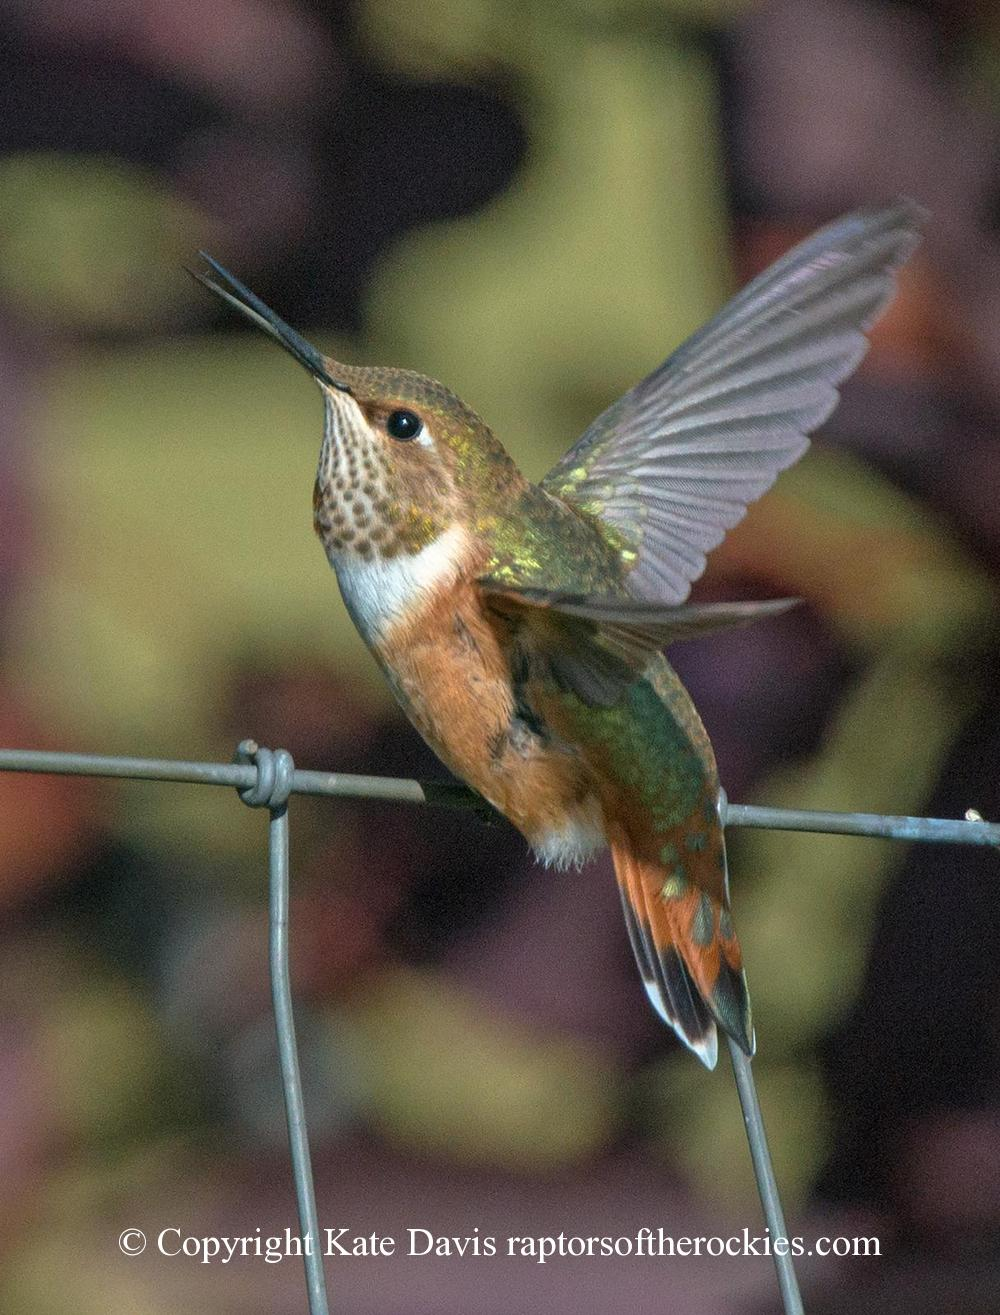 Song Bird Photos - Rufous Two - Shore Bird Photos - Rufous Two - Hummingbird perched on the fence with a tiny insect in her mouth